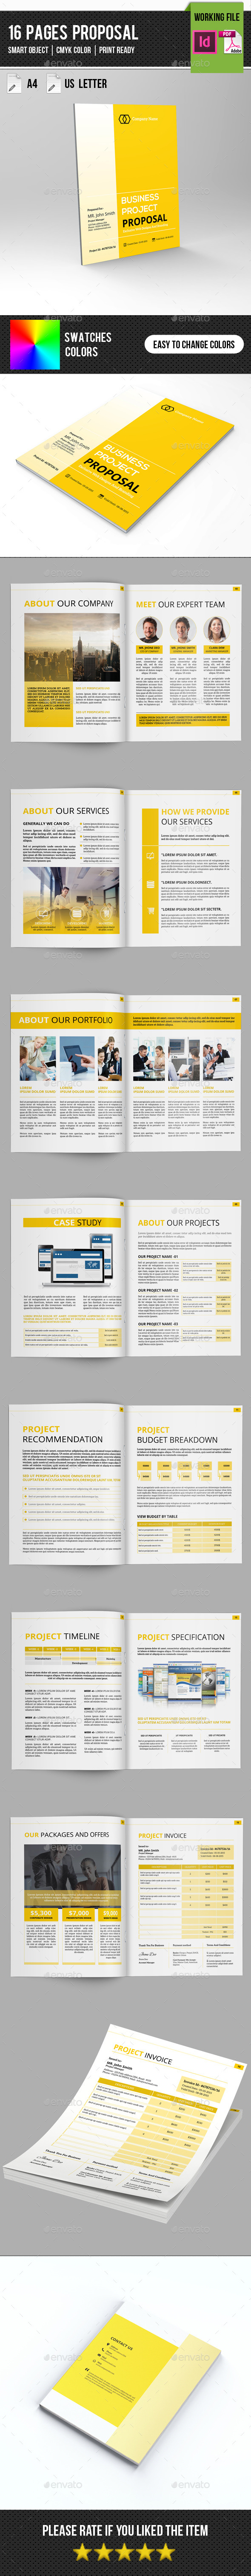 GraphicRiver Project Proposal Template-V247 11453876